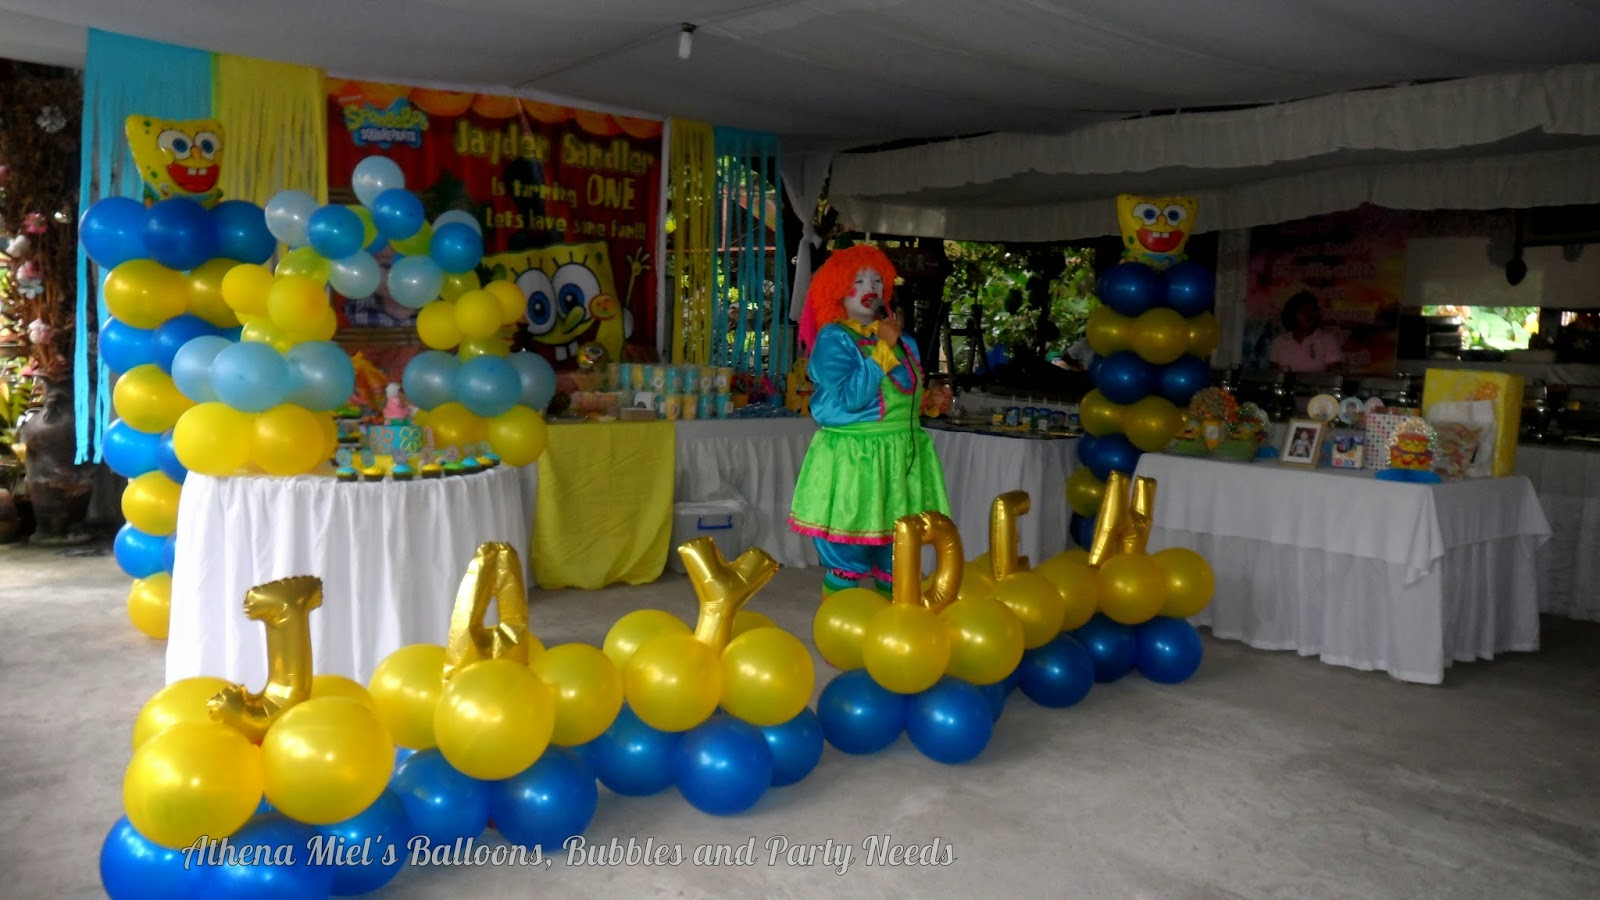 Birthday Party Athena Miels Balloons, Bubbles and Party Needs ...